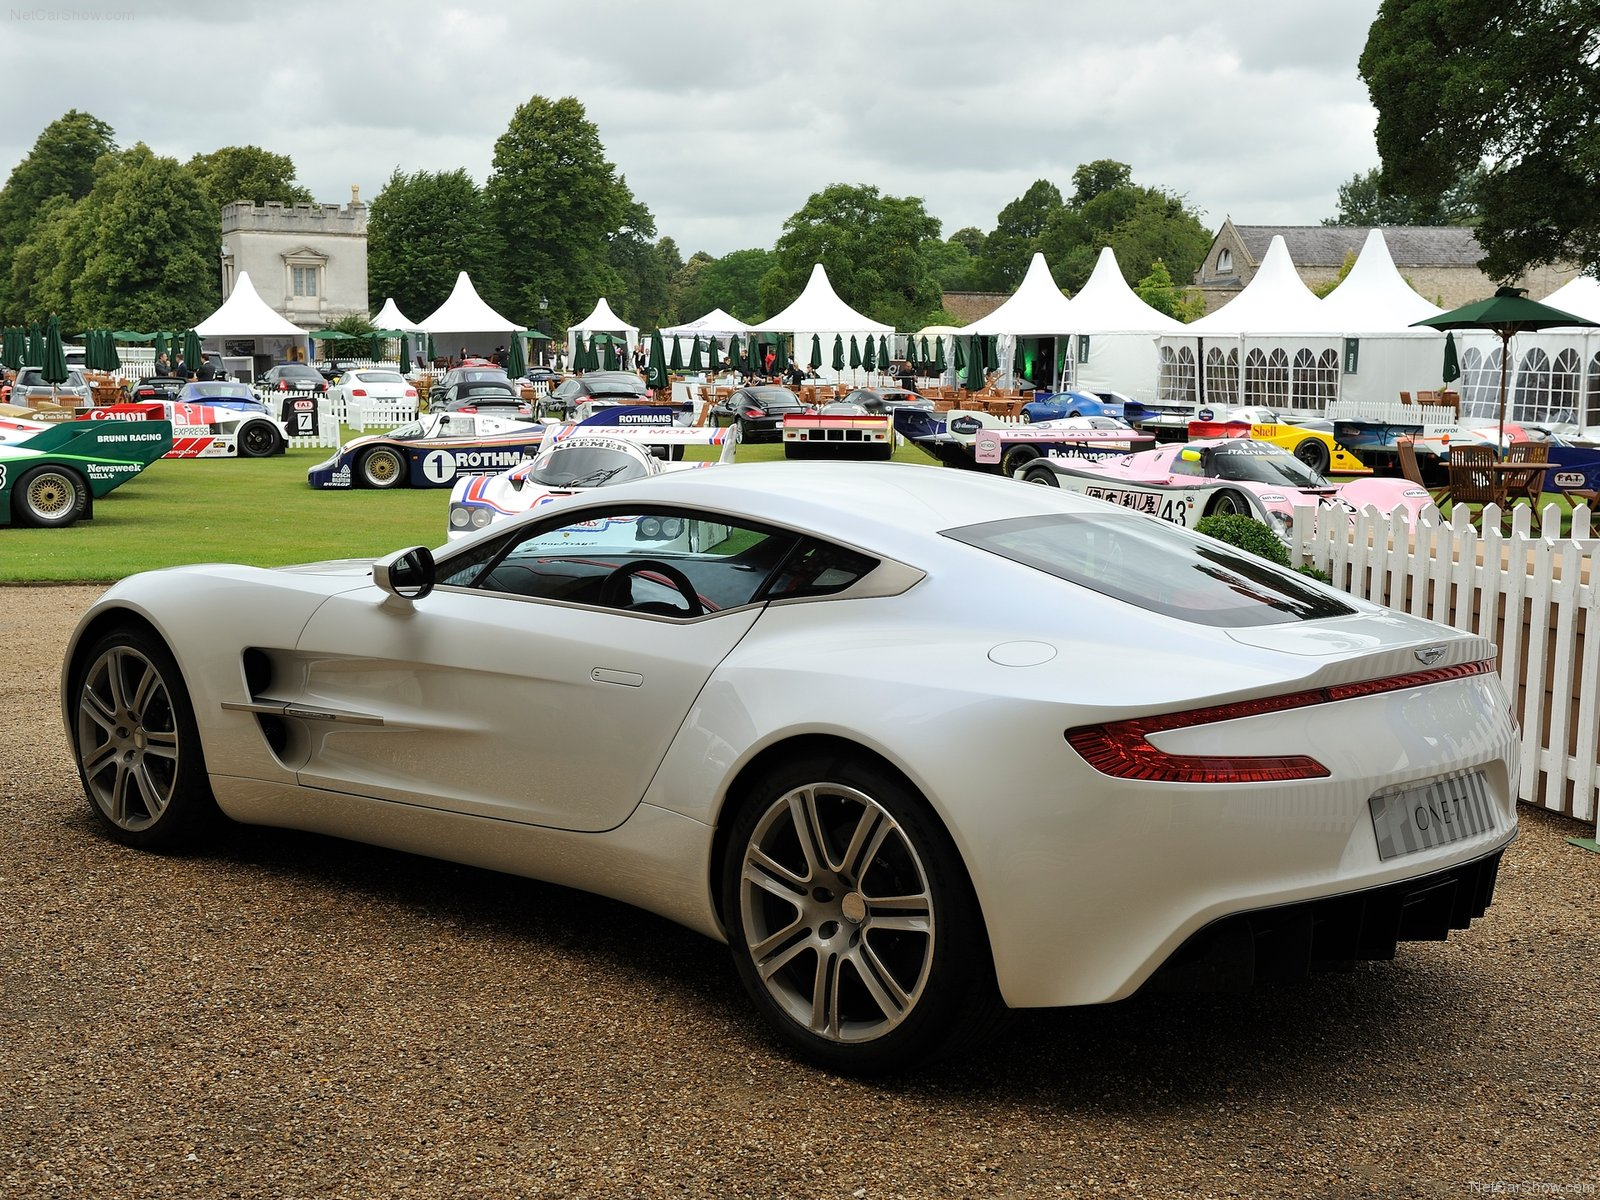 Max Power Cars Wallpaper Tuning Aston Martin One 77 Coupe 2012 Online Accessories